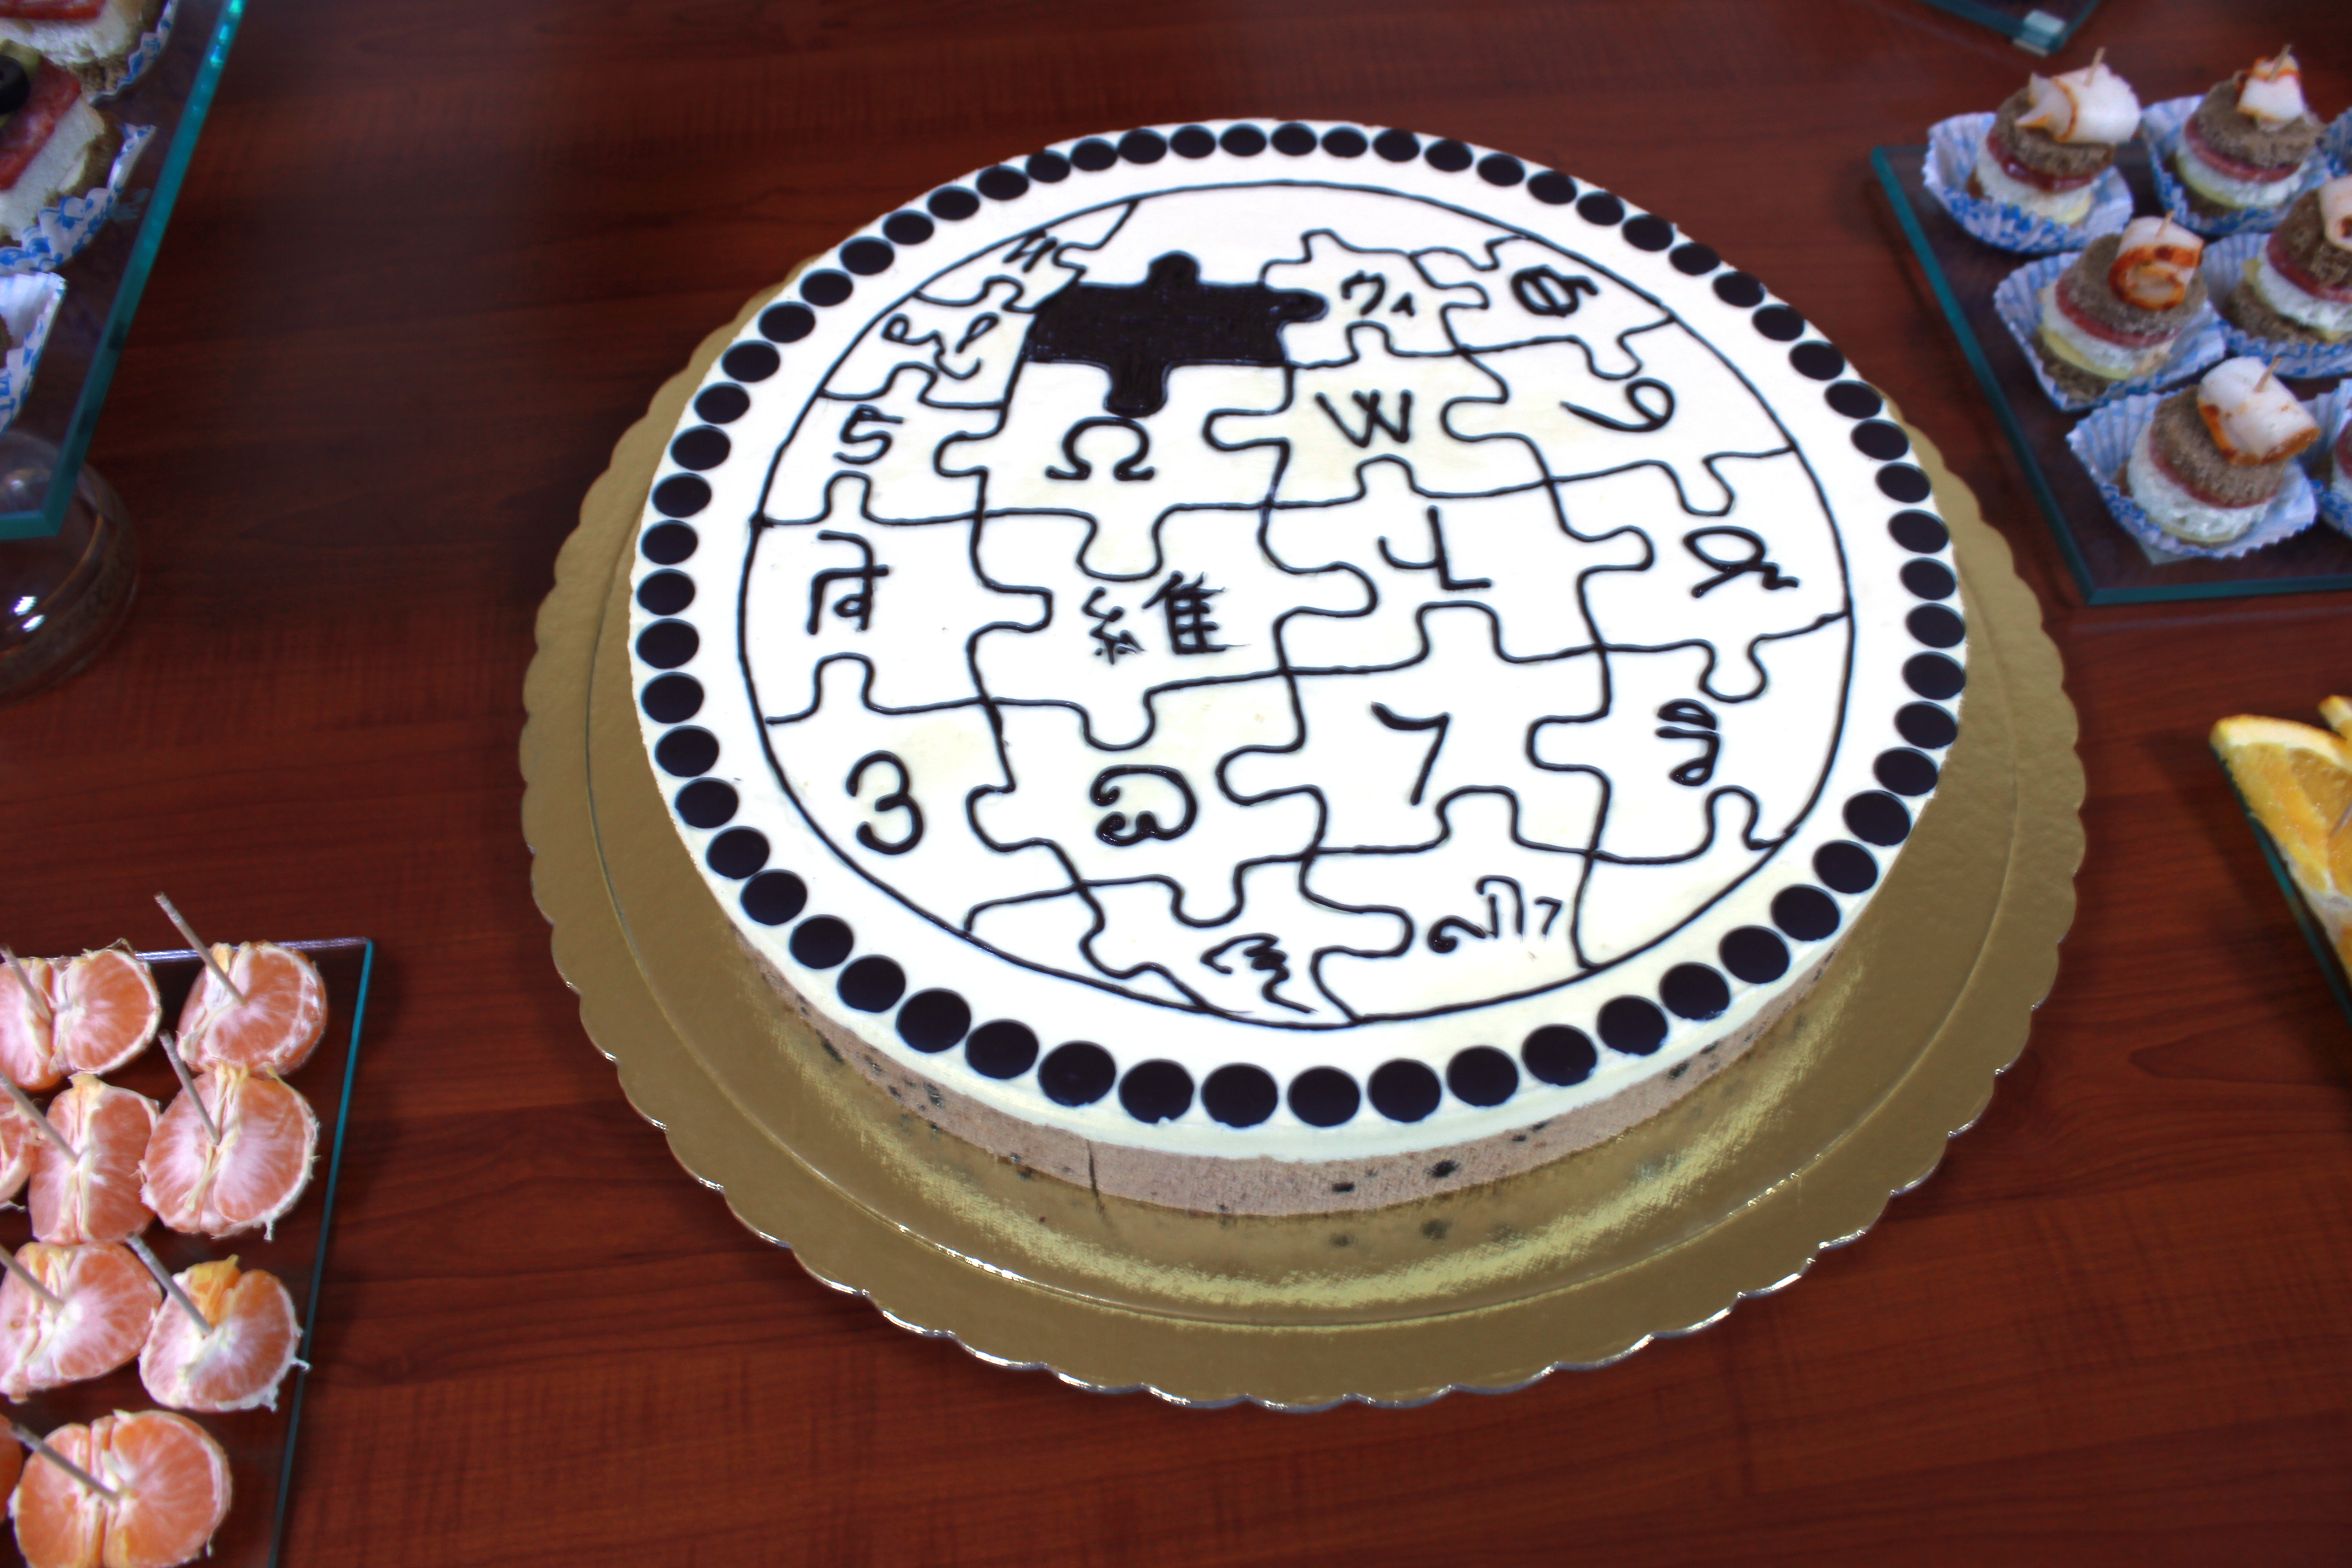 Birthday Cake Image Upload : 10 Insanely Weird Wikipedia Articles You Should Read